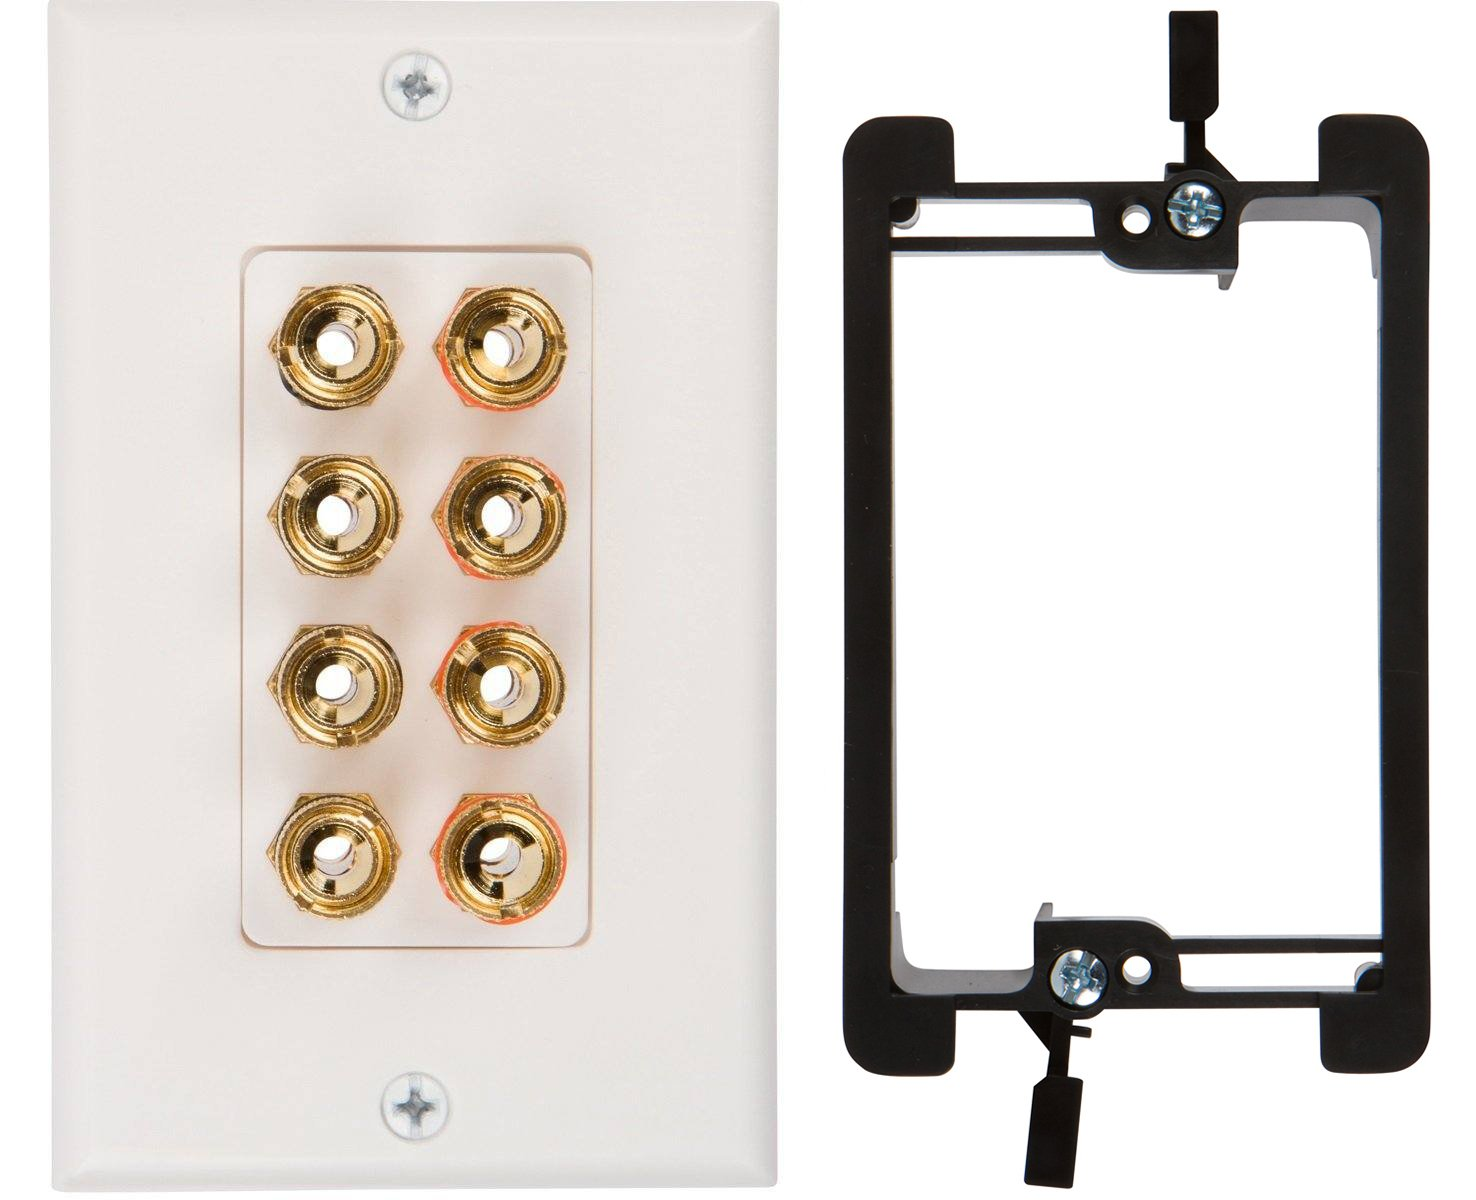 Buyer's Point Four Speaker Wall Plate, Premium Quality Gold Plated Copper Banana Binding Post Coupler Type, with Single Gang Low Voltage Mounting Bracket Device